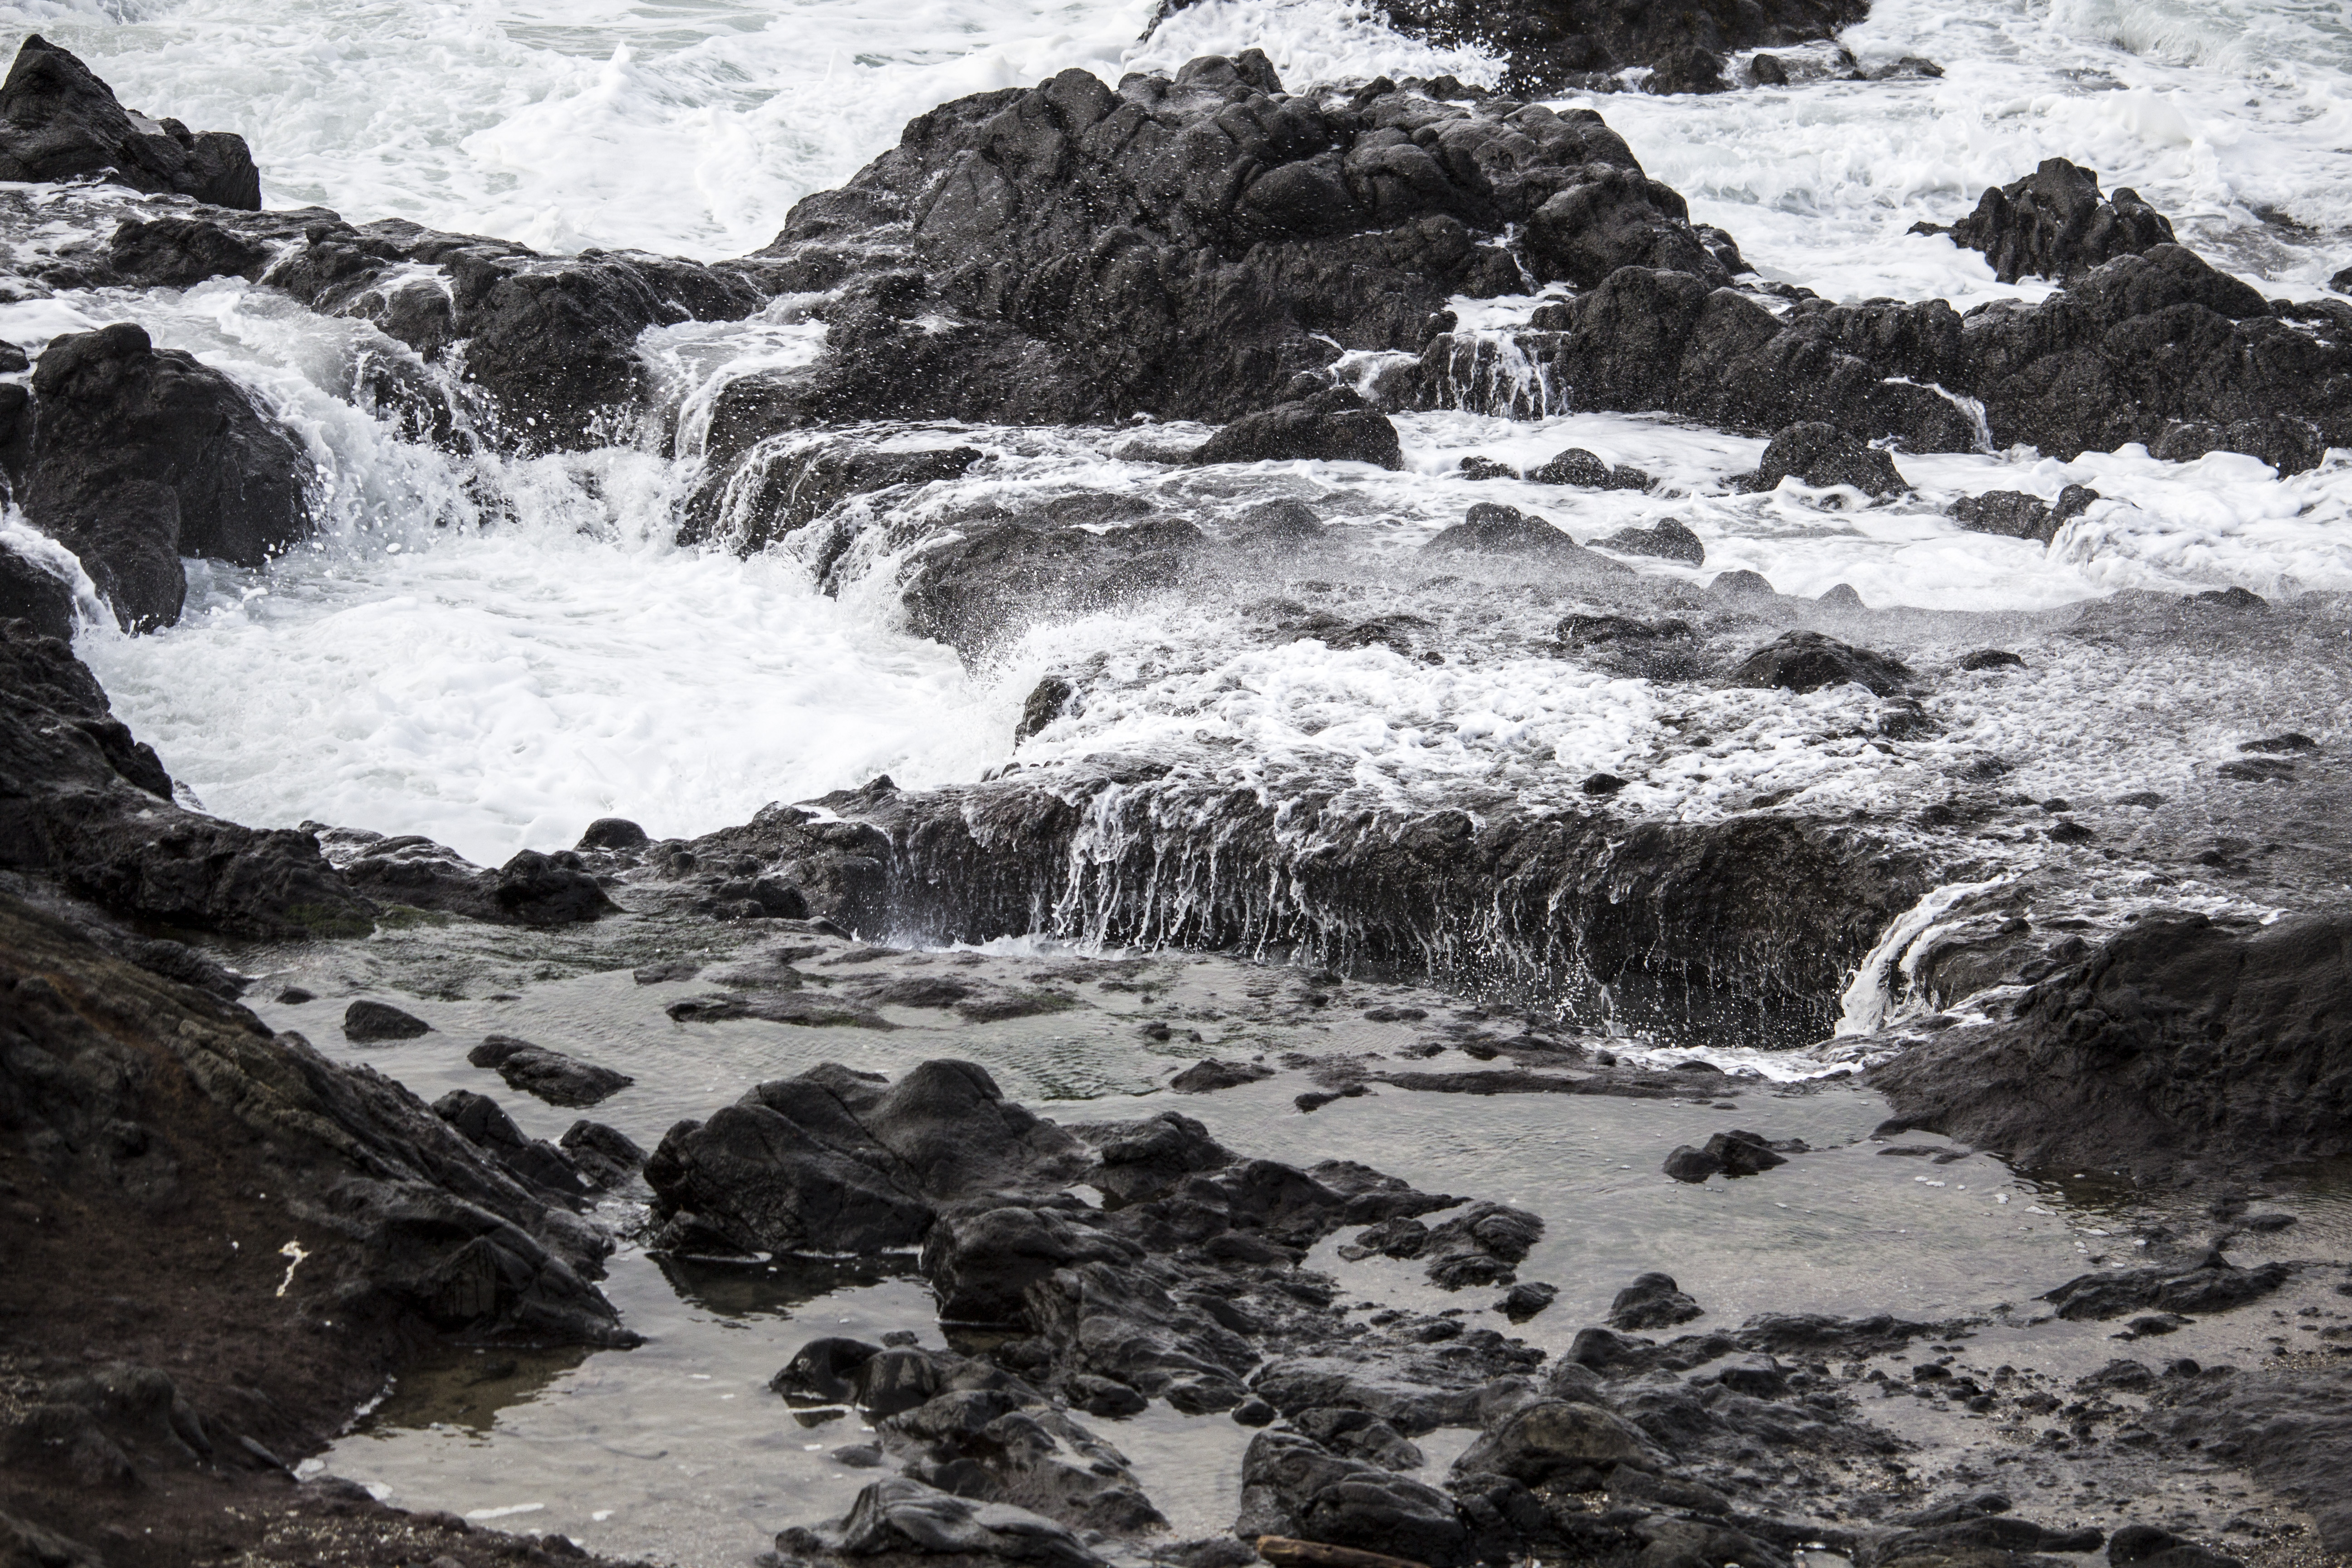 Yachats State Park, Oregon in winter, Storm, Sea, Water, Waves, HQ Photo